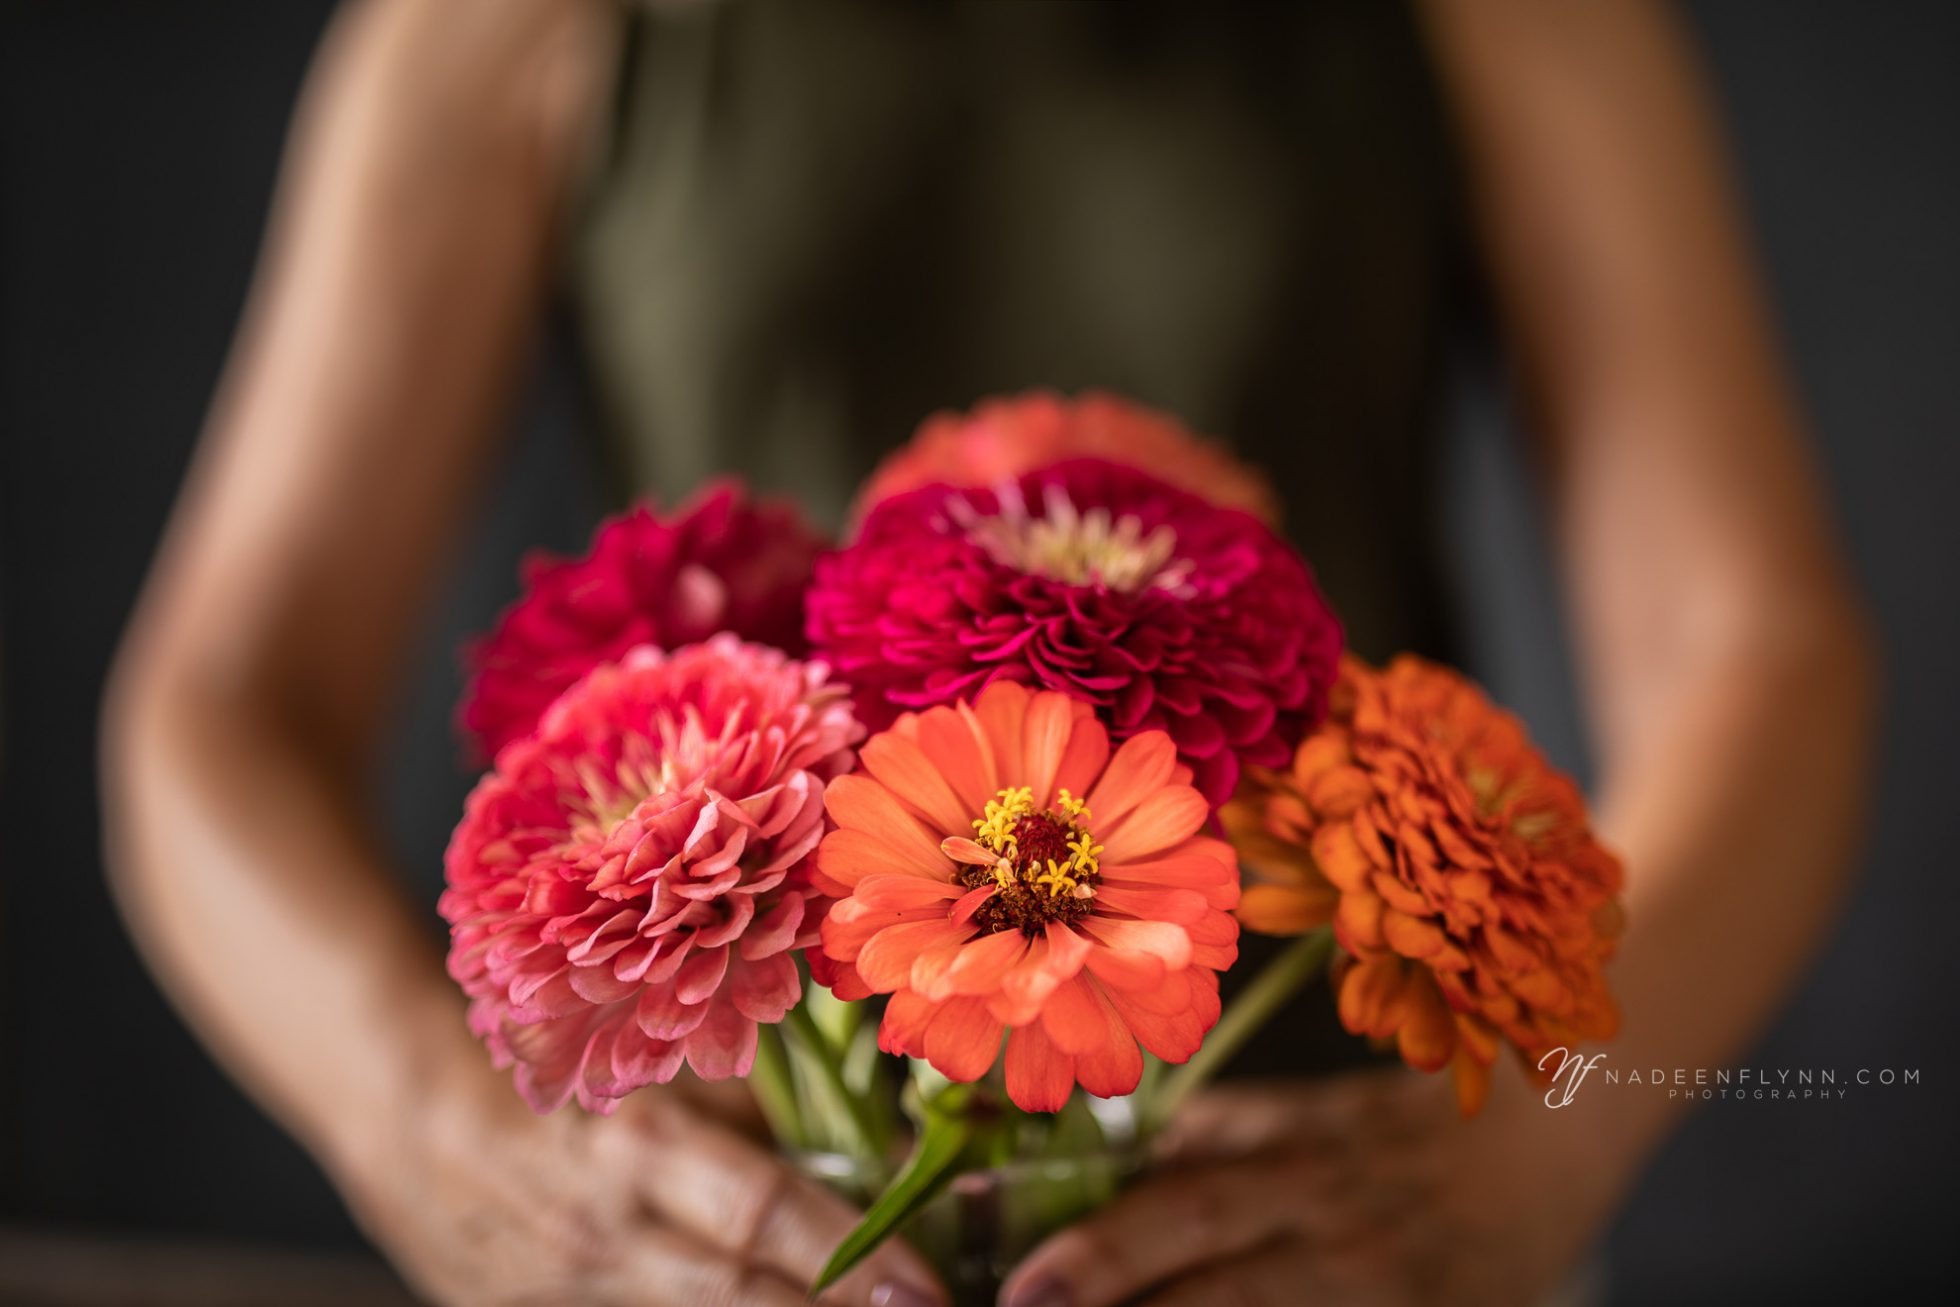 zinnia bouquet of bright orange and pink flowers